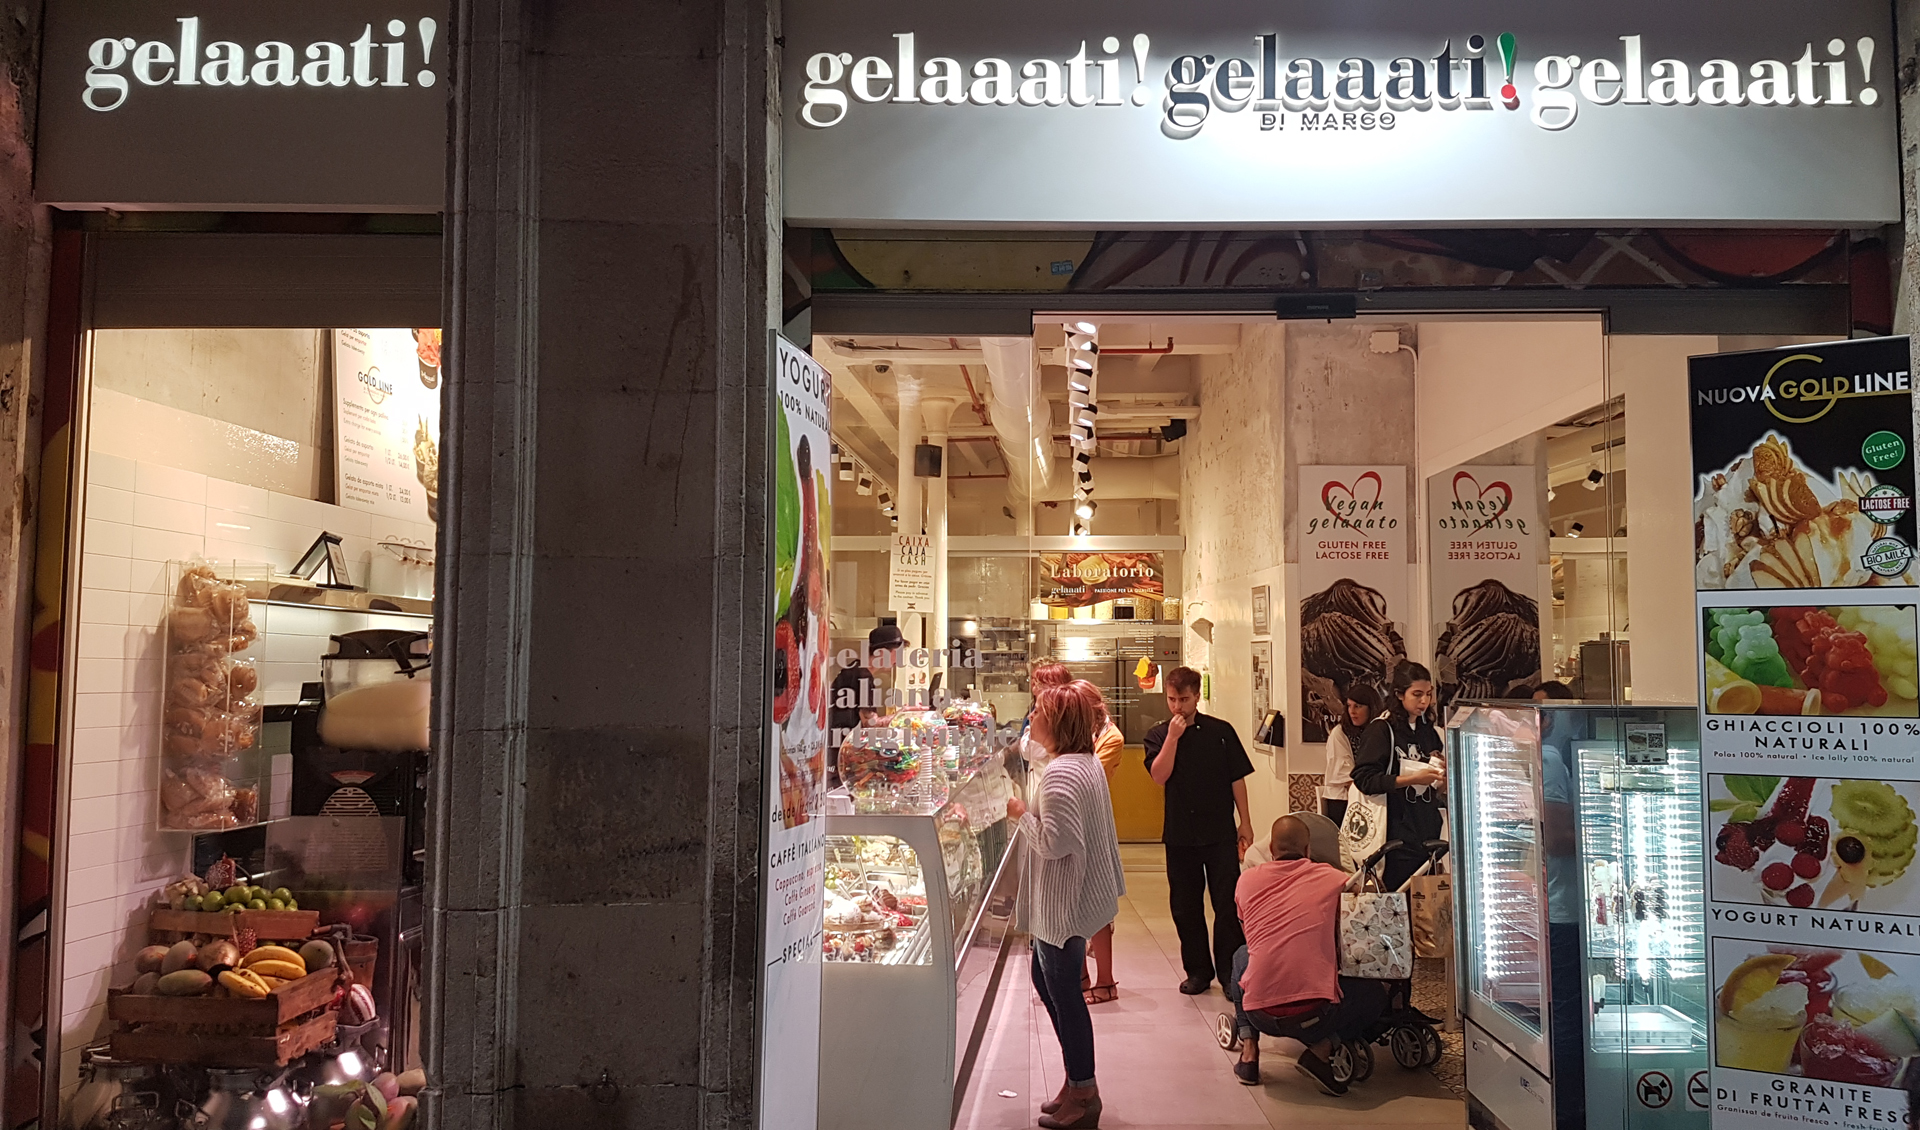 accessible-travel-guide-to-barcelona-Gelaaati Di Marco-vegan-gelato